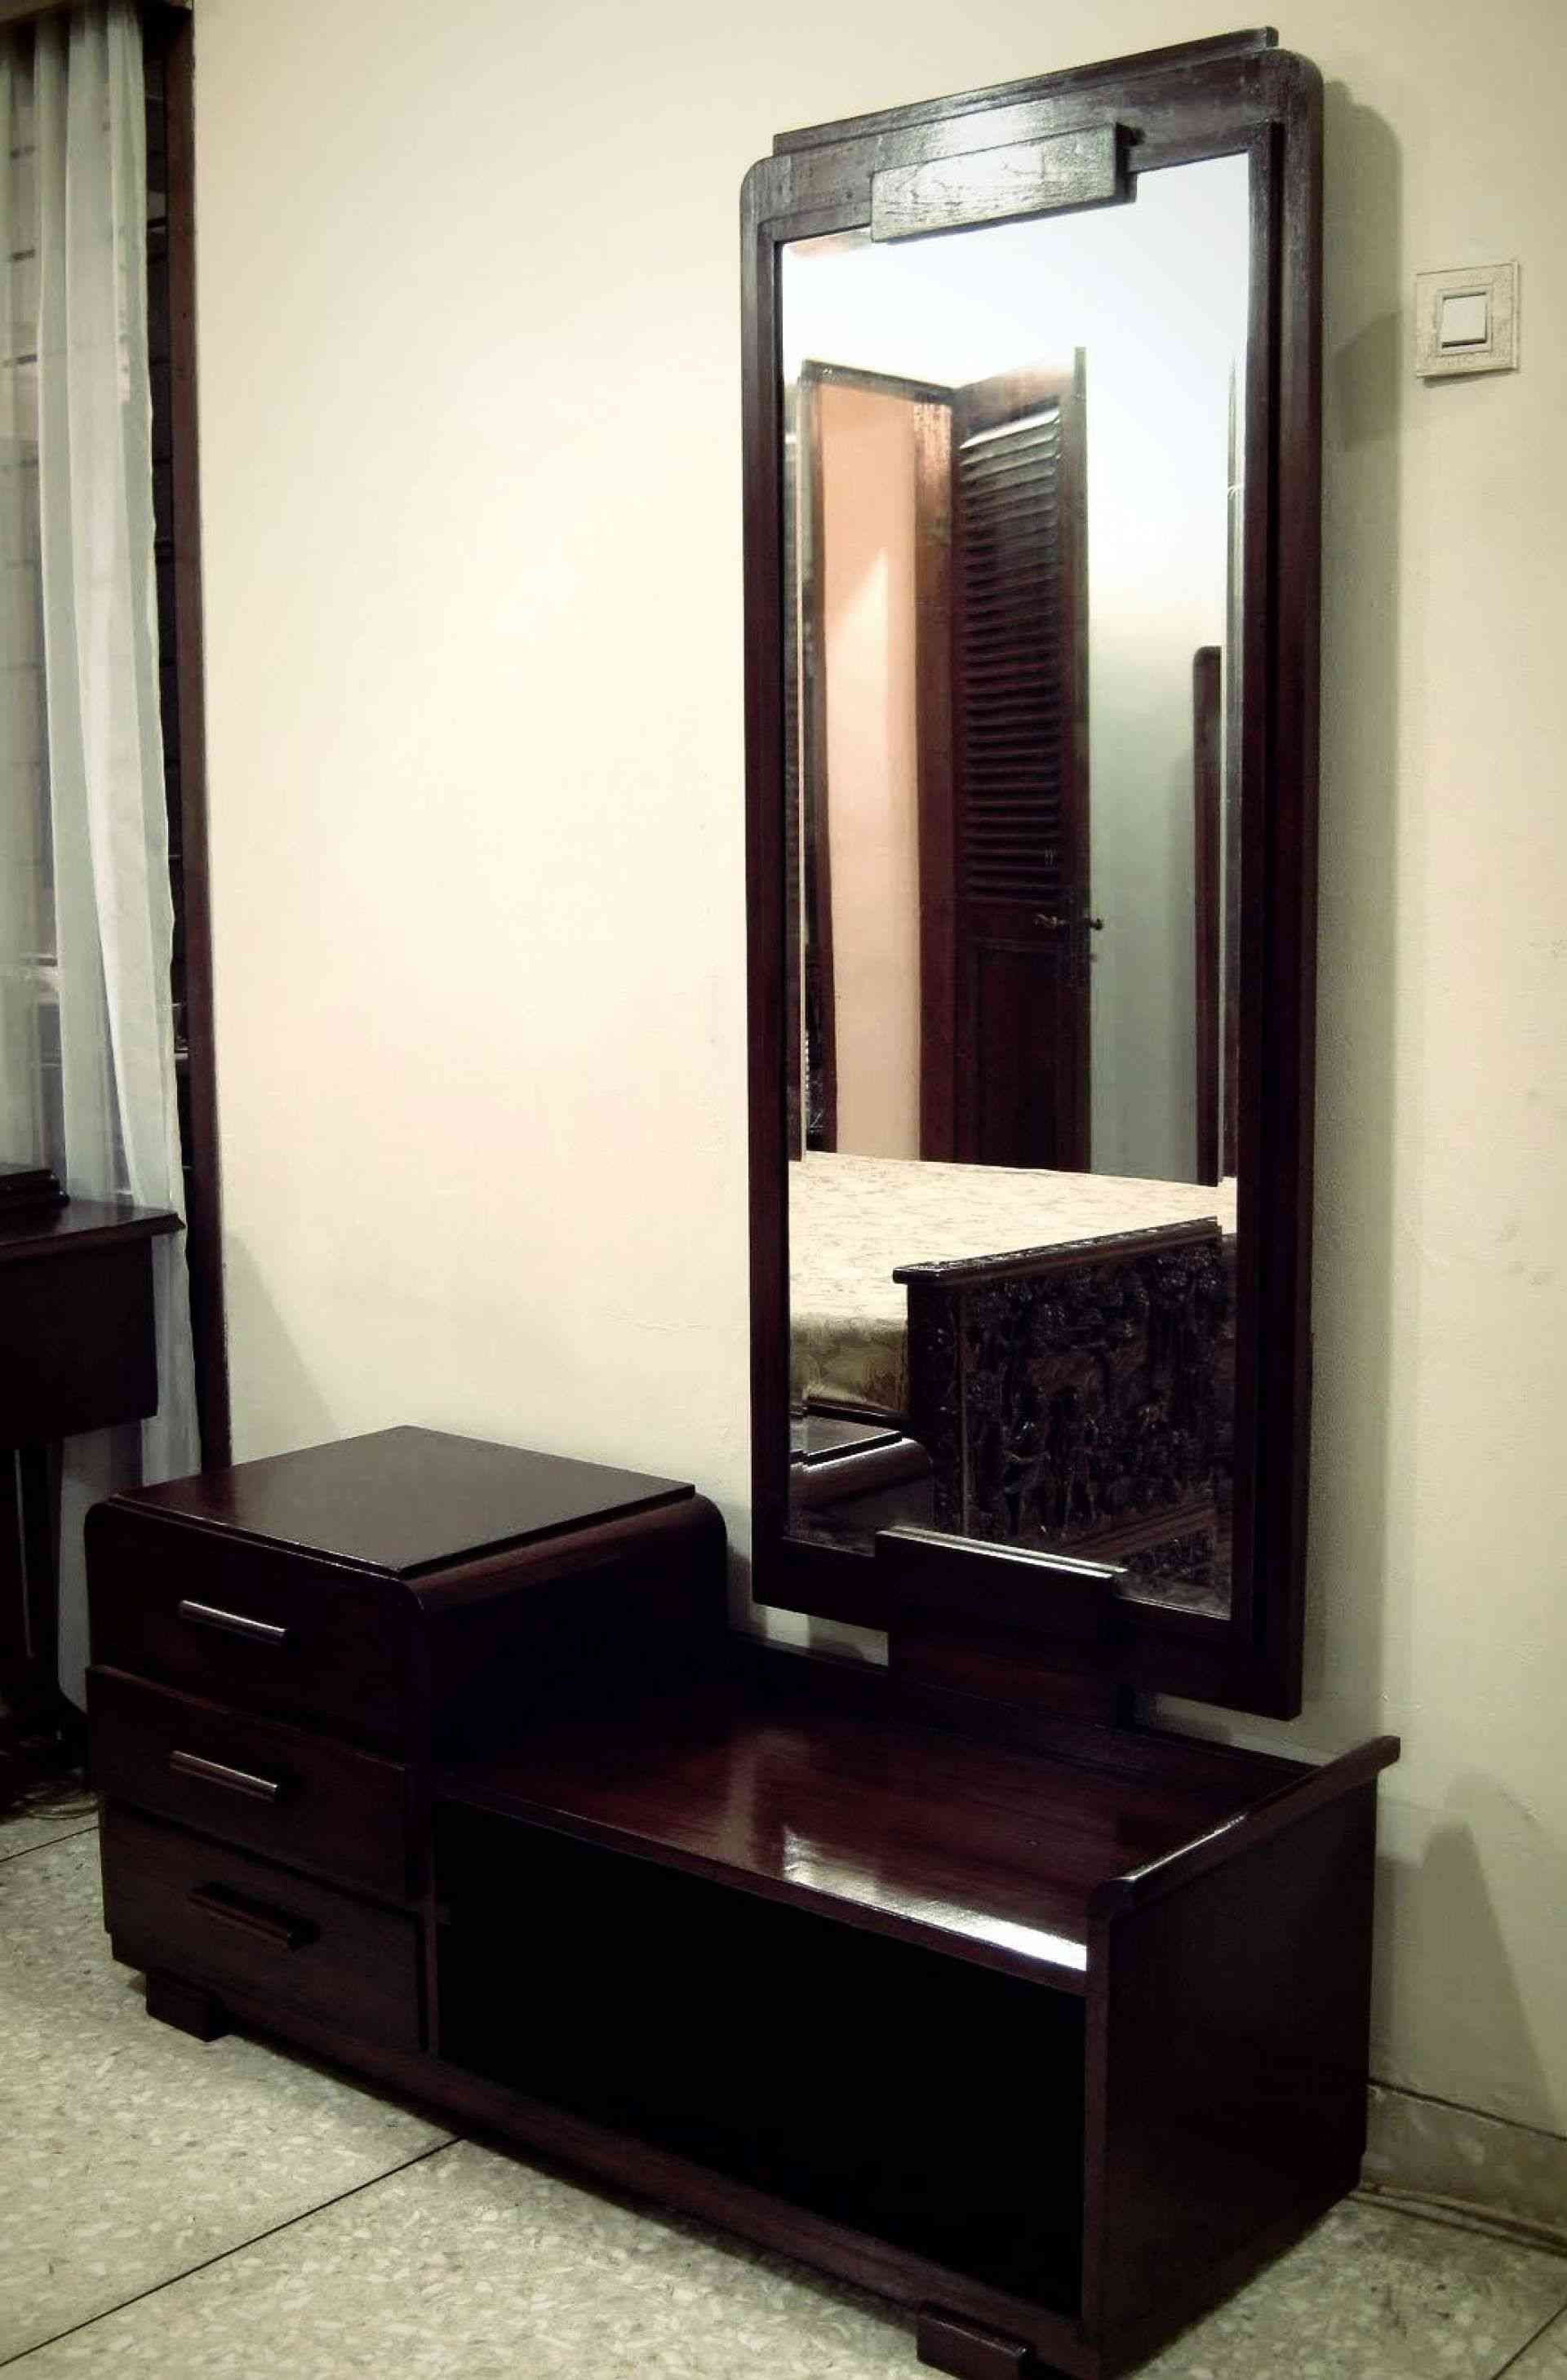 14 Luxury Dressing Table With Some Extra Mirrors Paijo Network Modern Dressing Table Designs Dressing Table Mirror Design Dressing Table Design